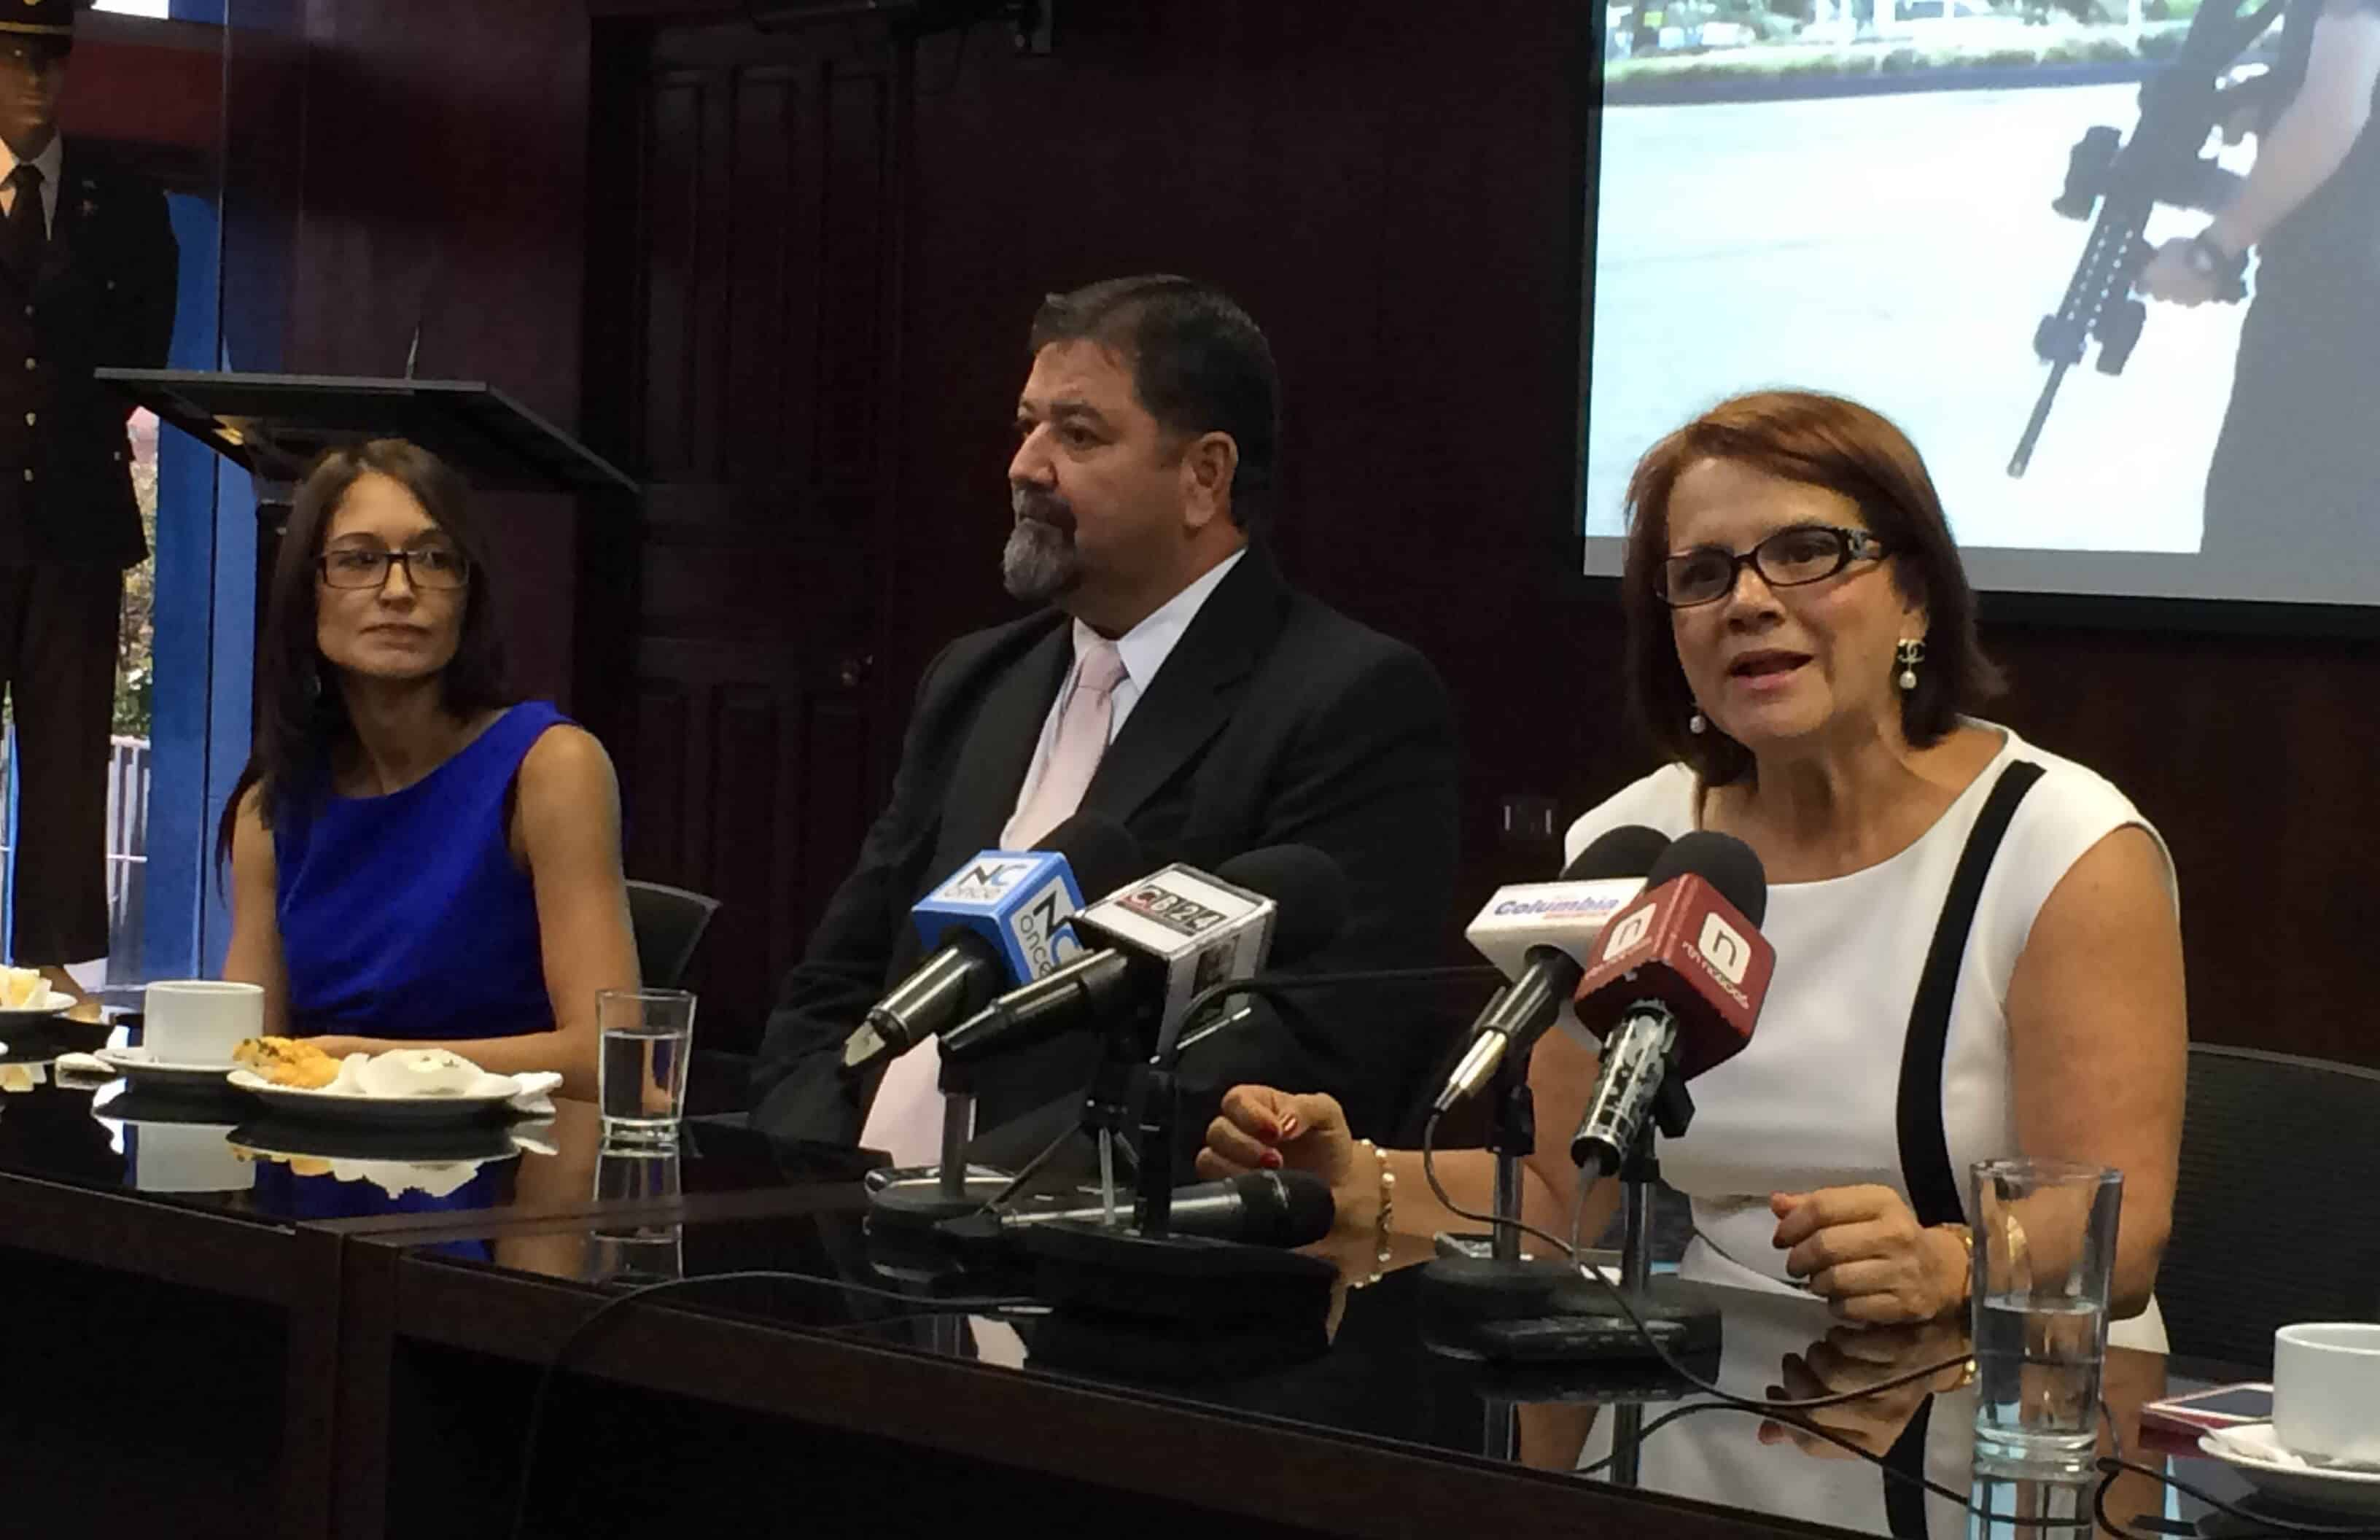 Public Security Minister Gustavo Mata, center, speaks at a press conference in 2014.